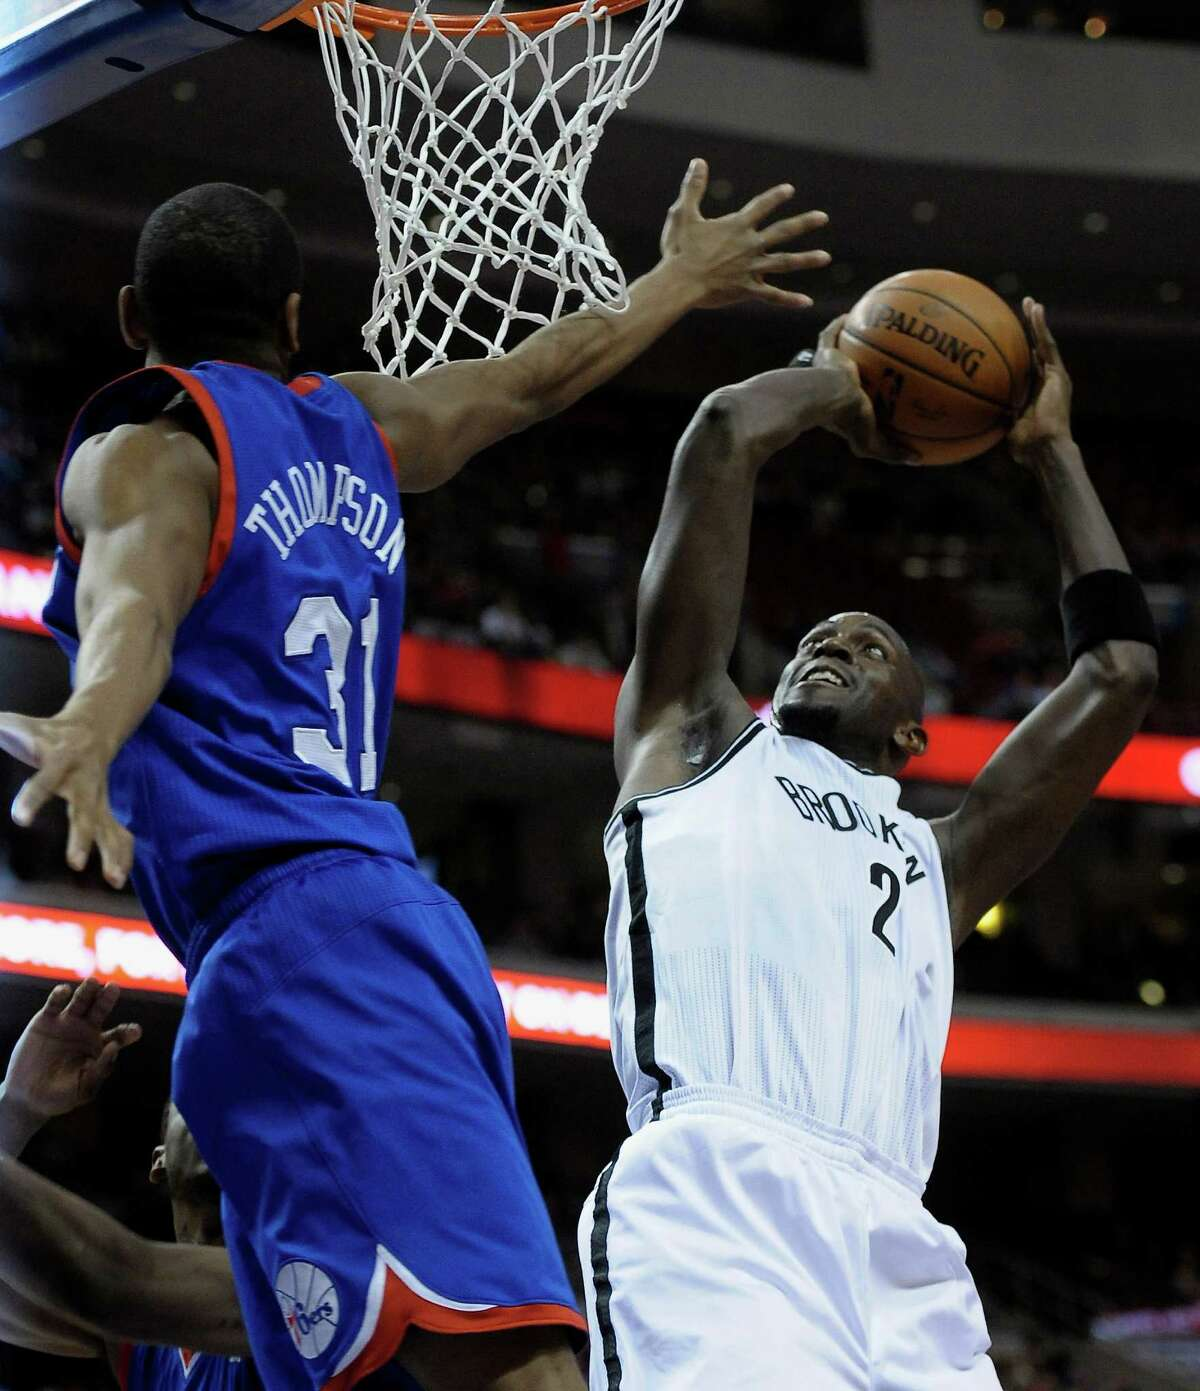 Brooklyn Nets' Kevin Garnett (2) shoots over Philadelphia 76ers' Hollis Thompson during the first half of an NBA basketball game on Saturday, April 5, 2014, in Philadelphia. (AP Photo/Michael Perez) ORG XMIT: PAMP101